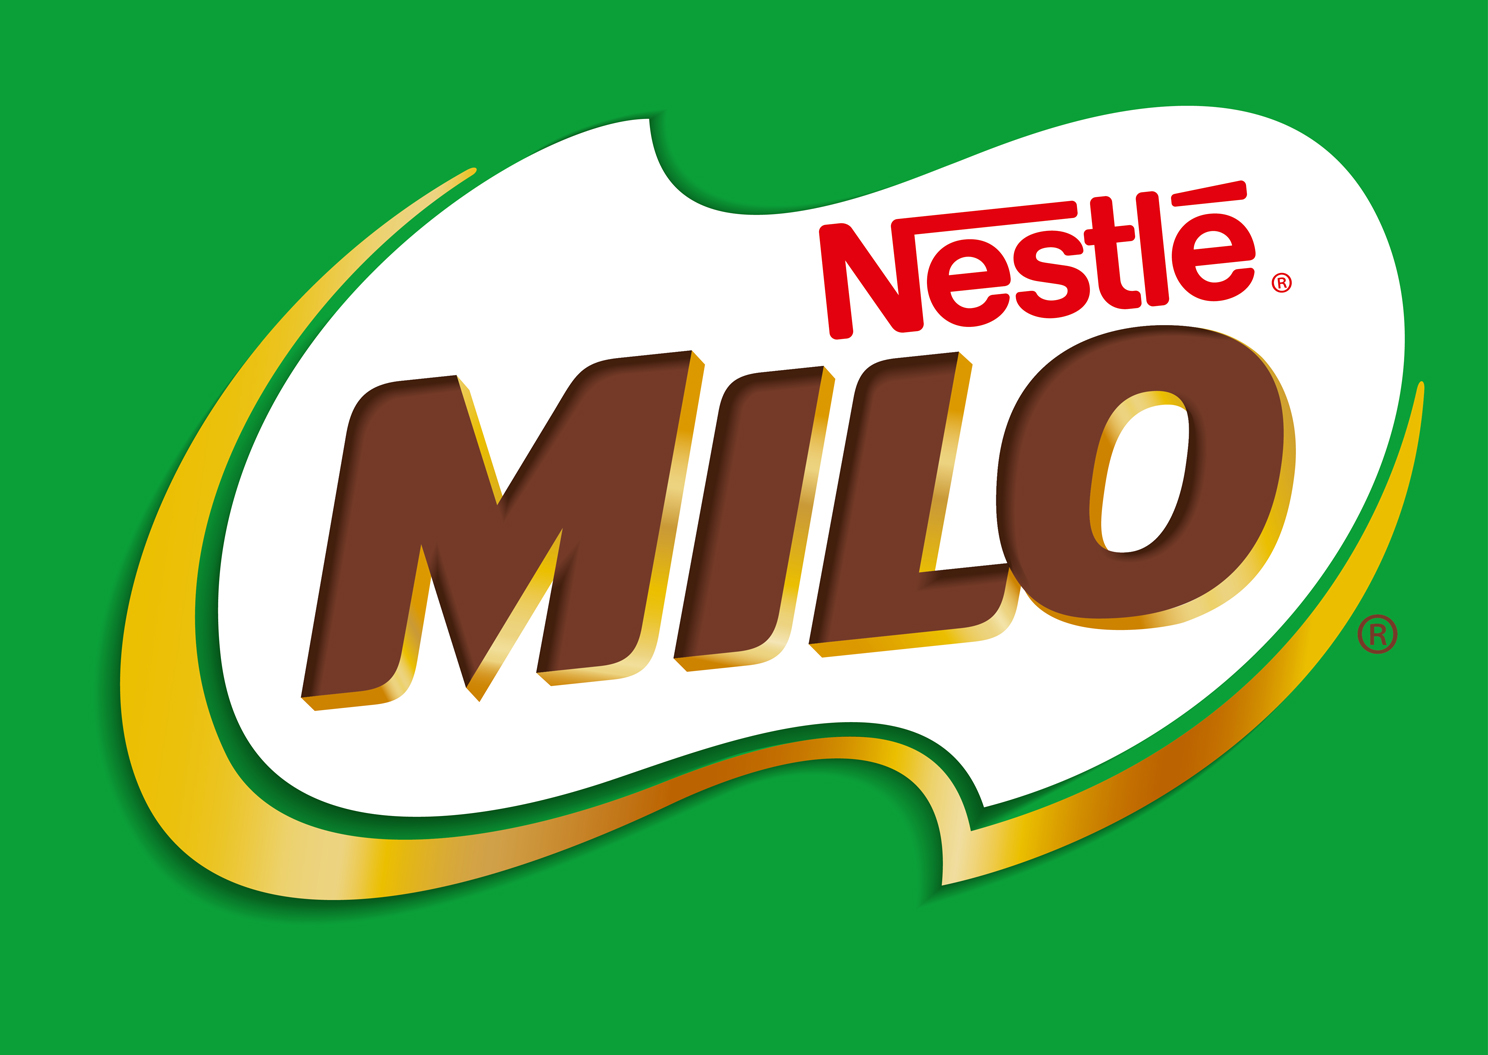 nestle vision and mission